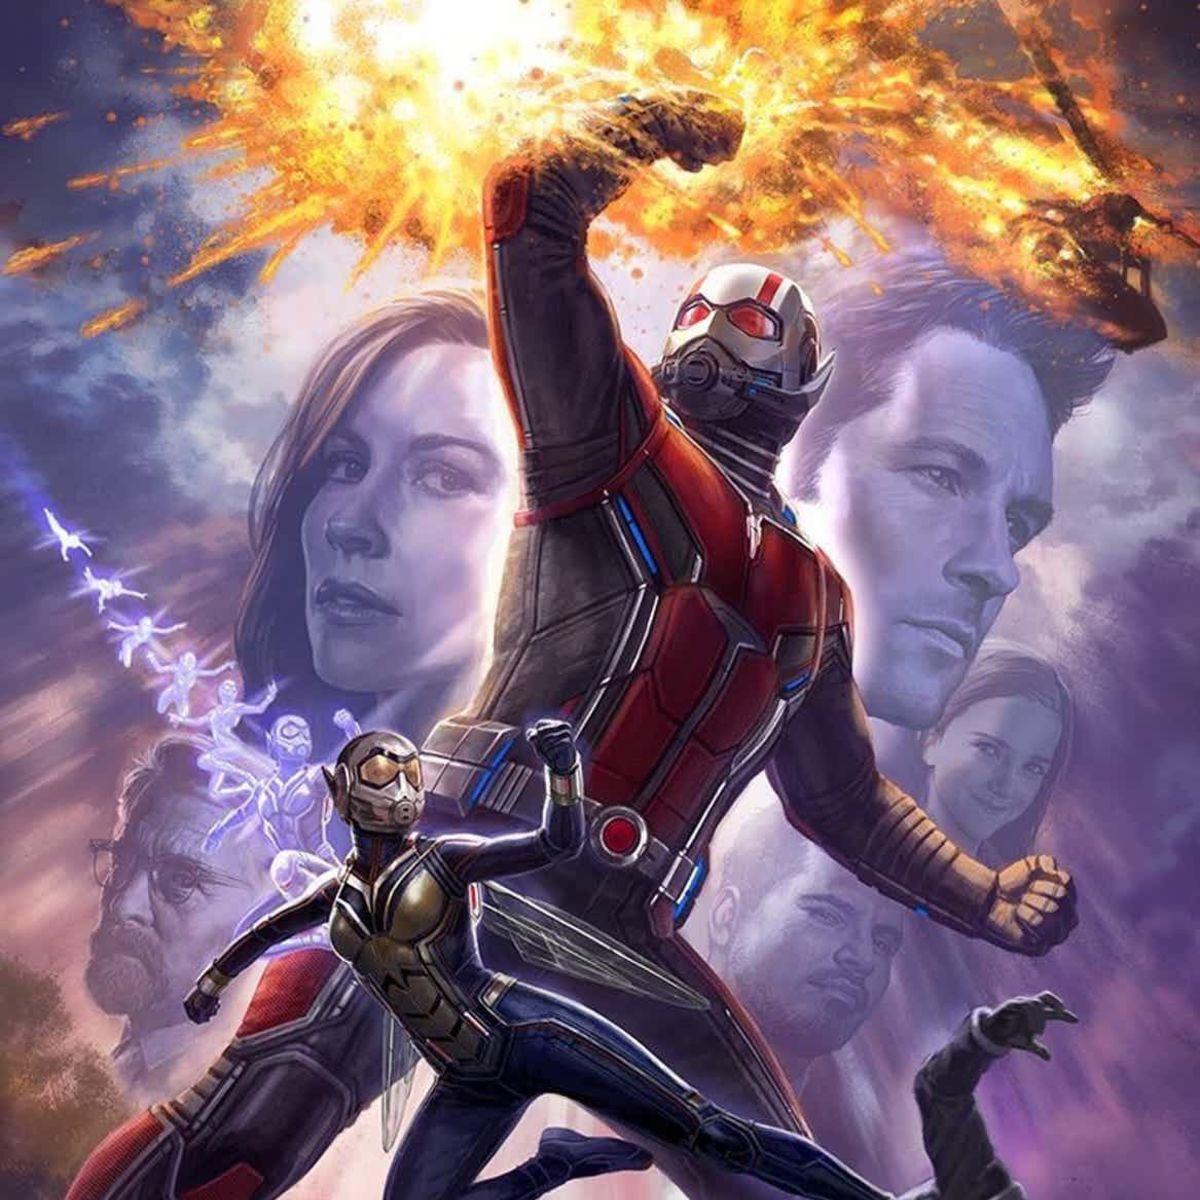 ant-man-and-the-wasp-concept-art.jpg